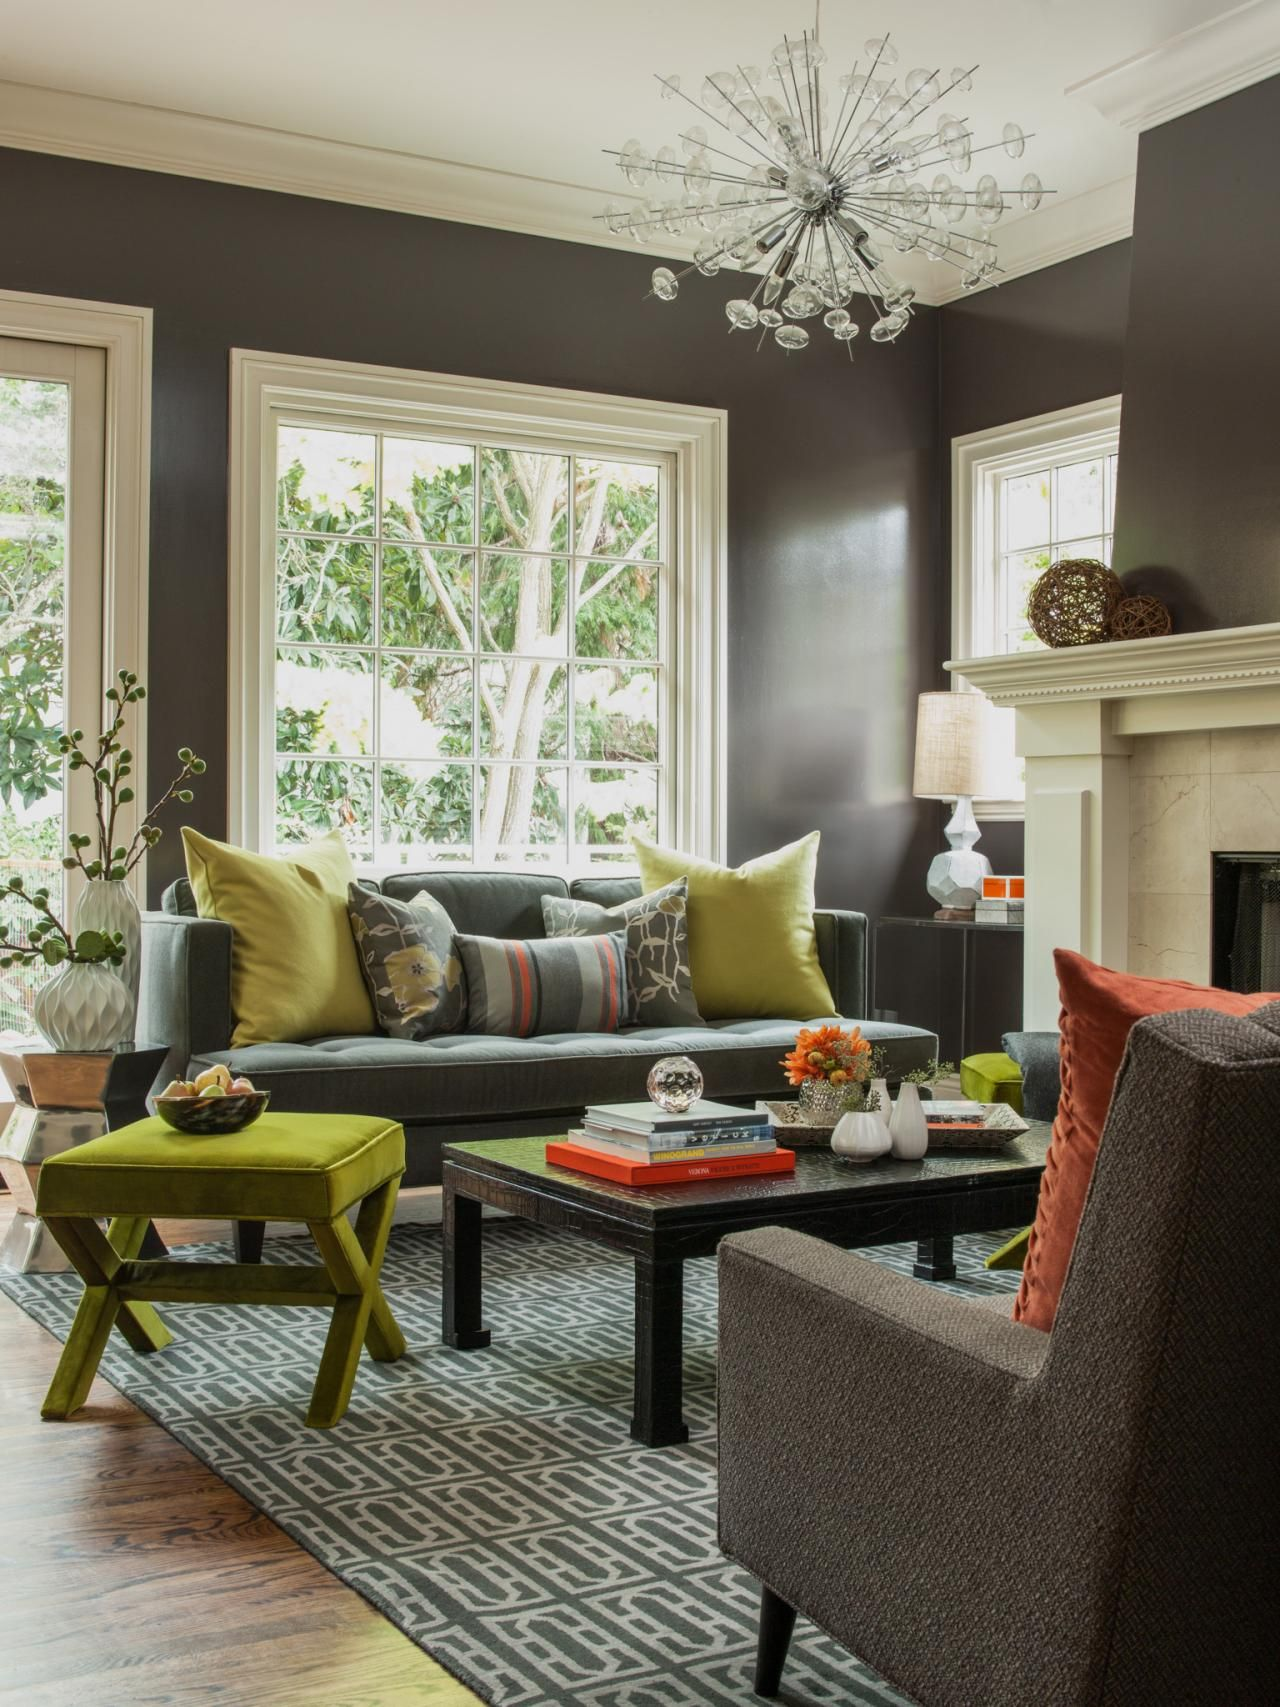 Eclectic Living Room Design Ideas: 25 Eclectic Living Room Design Ideas